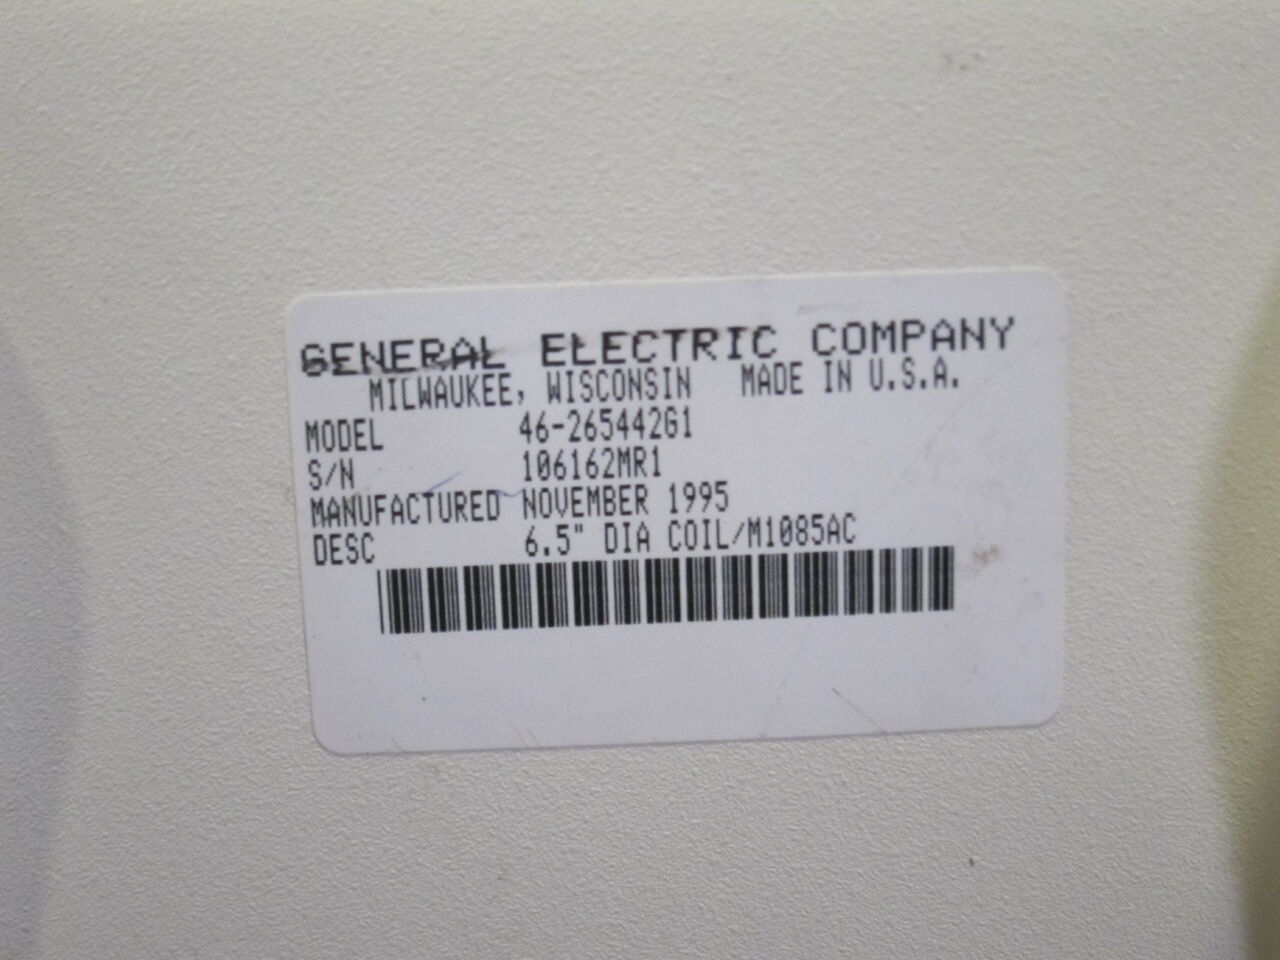 GE Signa 1.5 T Extremity / Linear Head MRI Coil